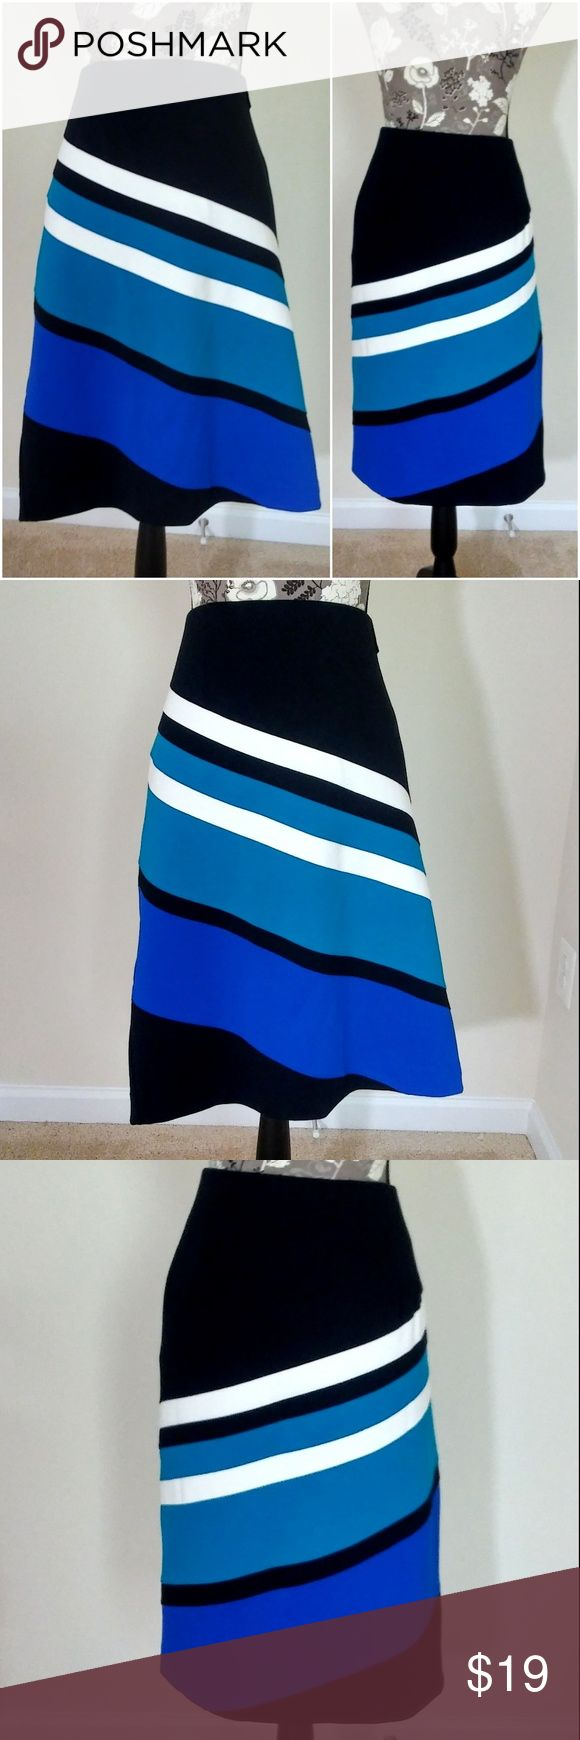 """LANE BRYANT Pencil Skirt LANE BRYANT Pencil Skirt   Women's Plus Size 22  Black Blue and White Swirl Geometric Design Zip Closure Great Career Piece For All Seasons  Approx Meas:  (Lying Flat) Waist 21"""" / Hips 25"""" / Width at Hemline 24"""" / Length 24"""" from top of waistband  (See my other Lane Bryant Polka Dot Skirt in Same Sz.)  SMOKE FREE HOME Lane Bryant Skirts Pencil"""